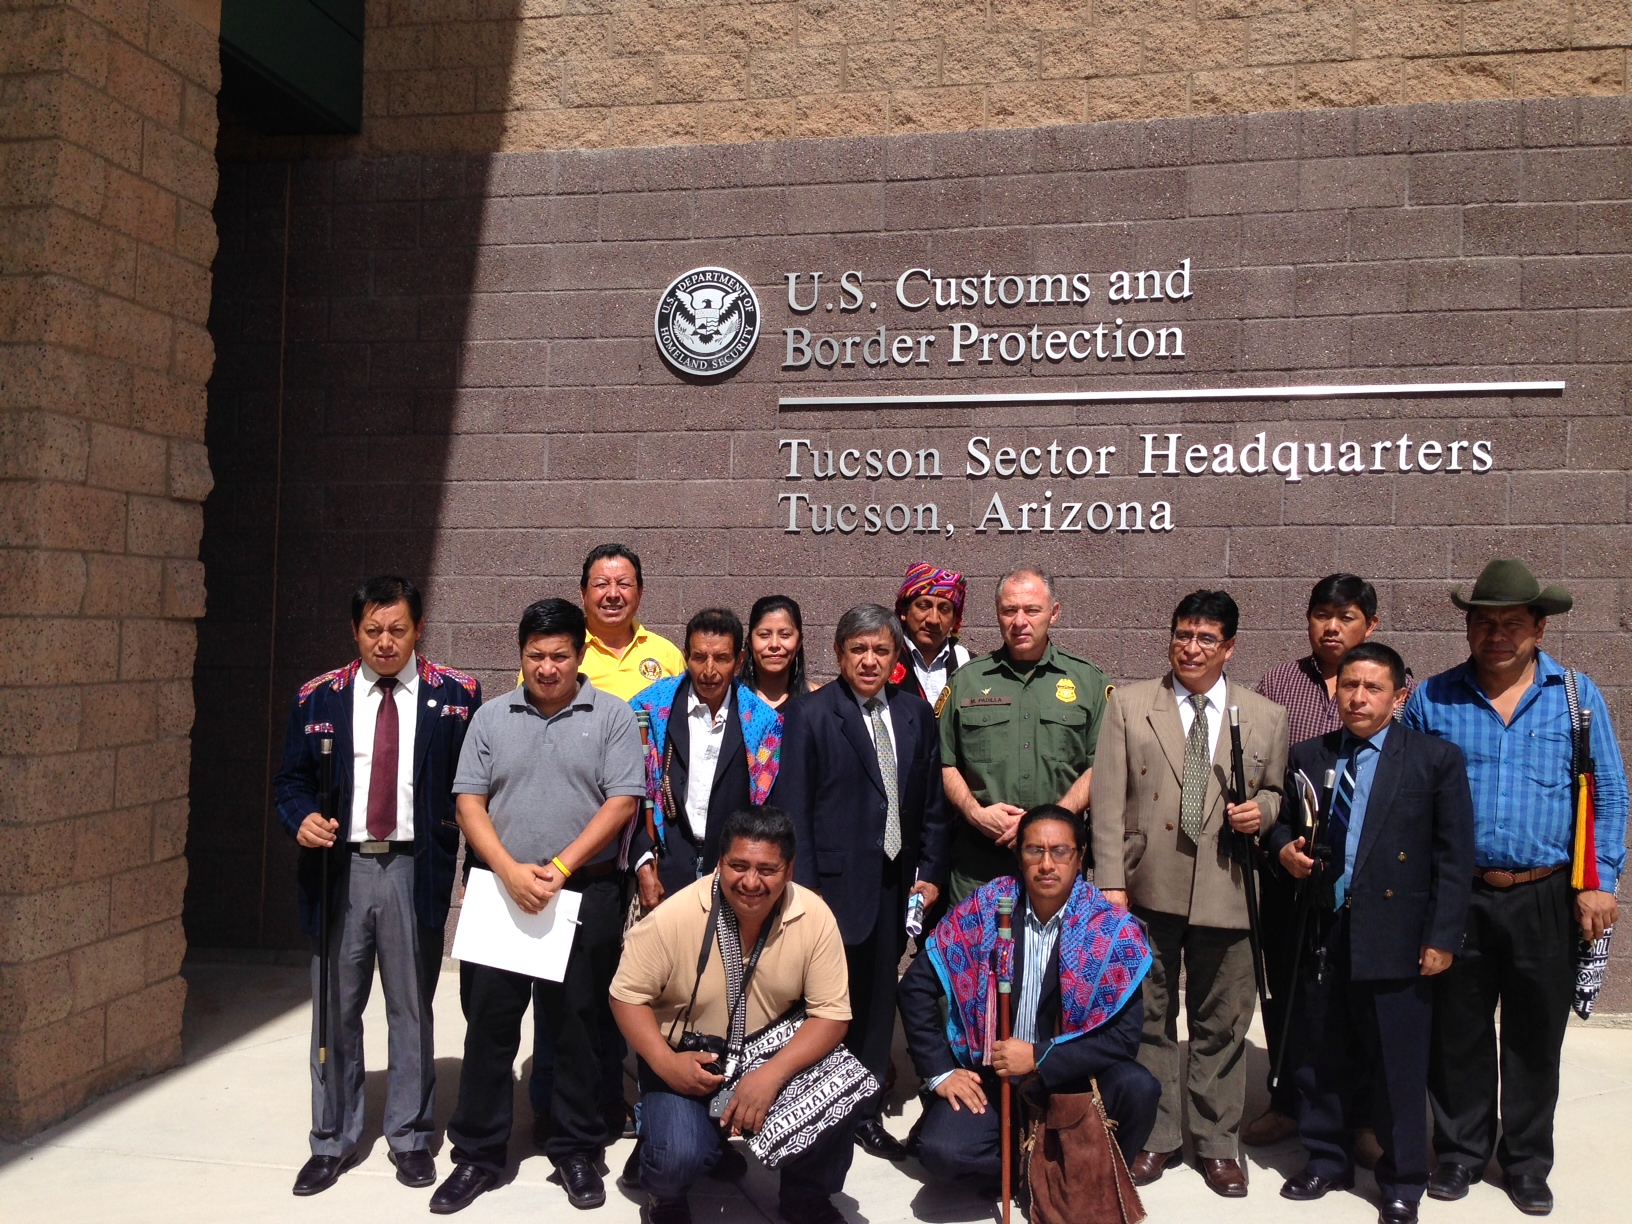 Participants at the U.S. Customs and Border Protection.